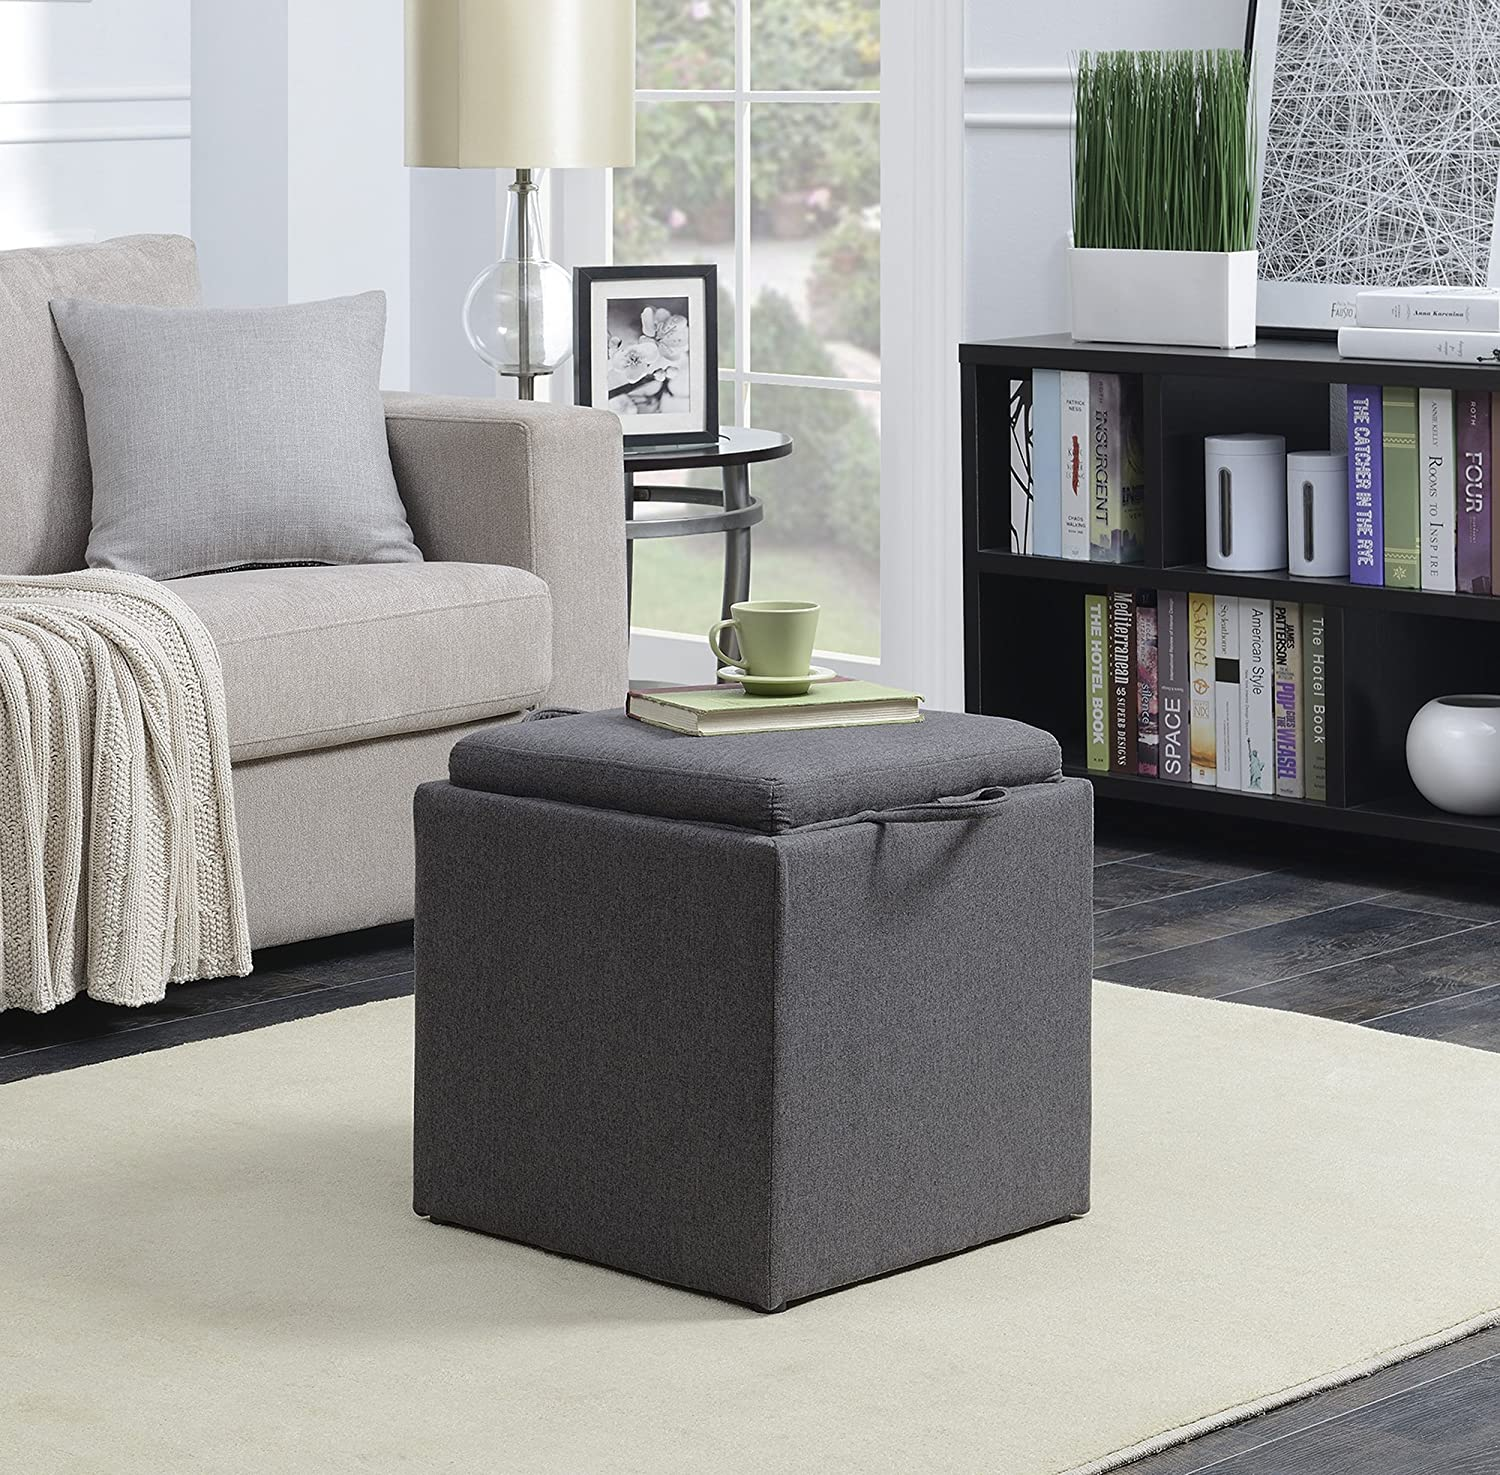 Convenience Concepts Designs4Comfort Park Avenue Single Ottoman with Stool, Black 143010B